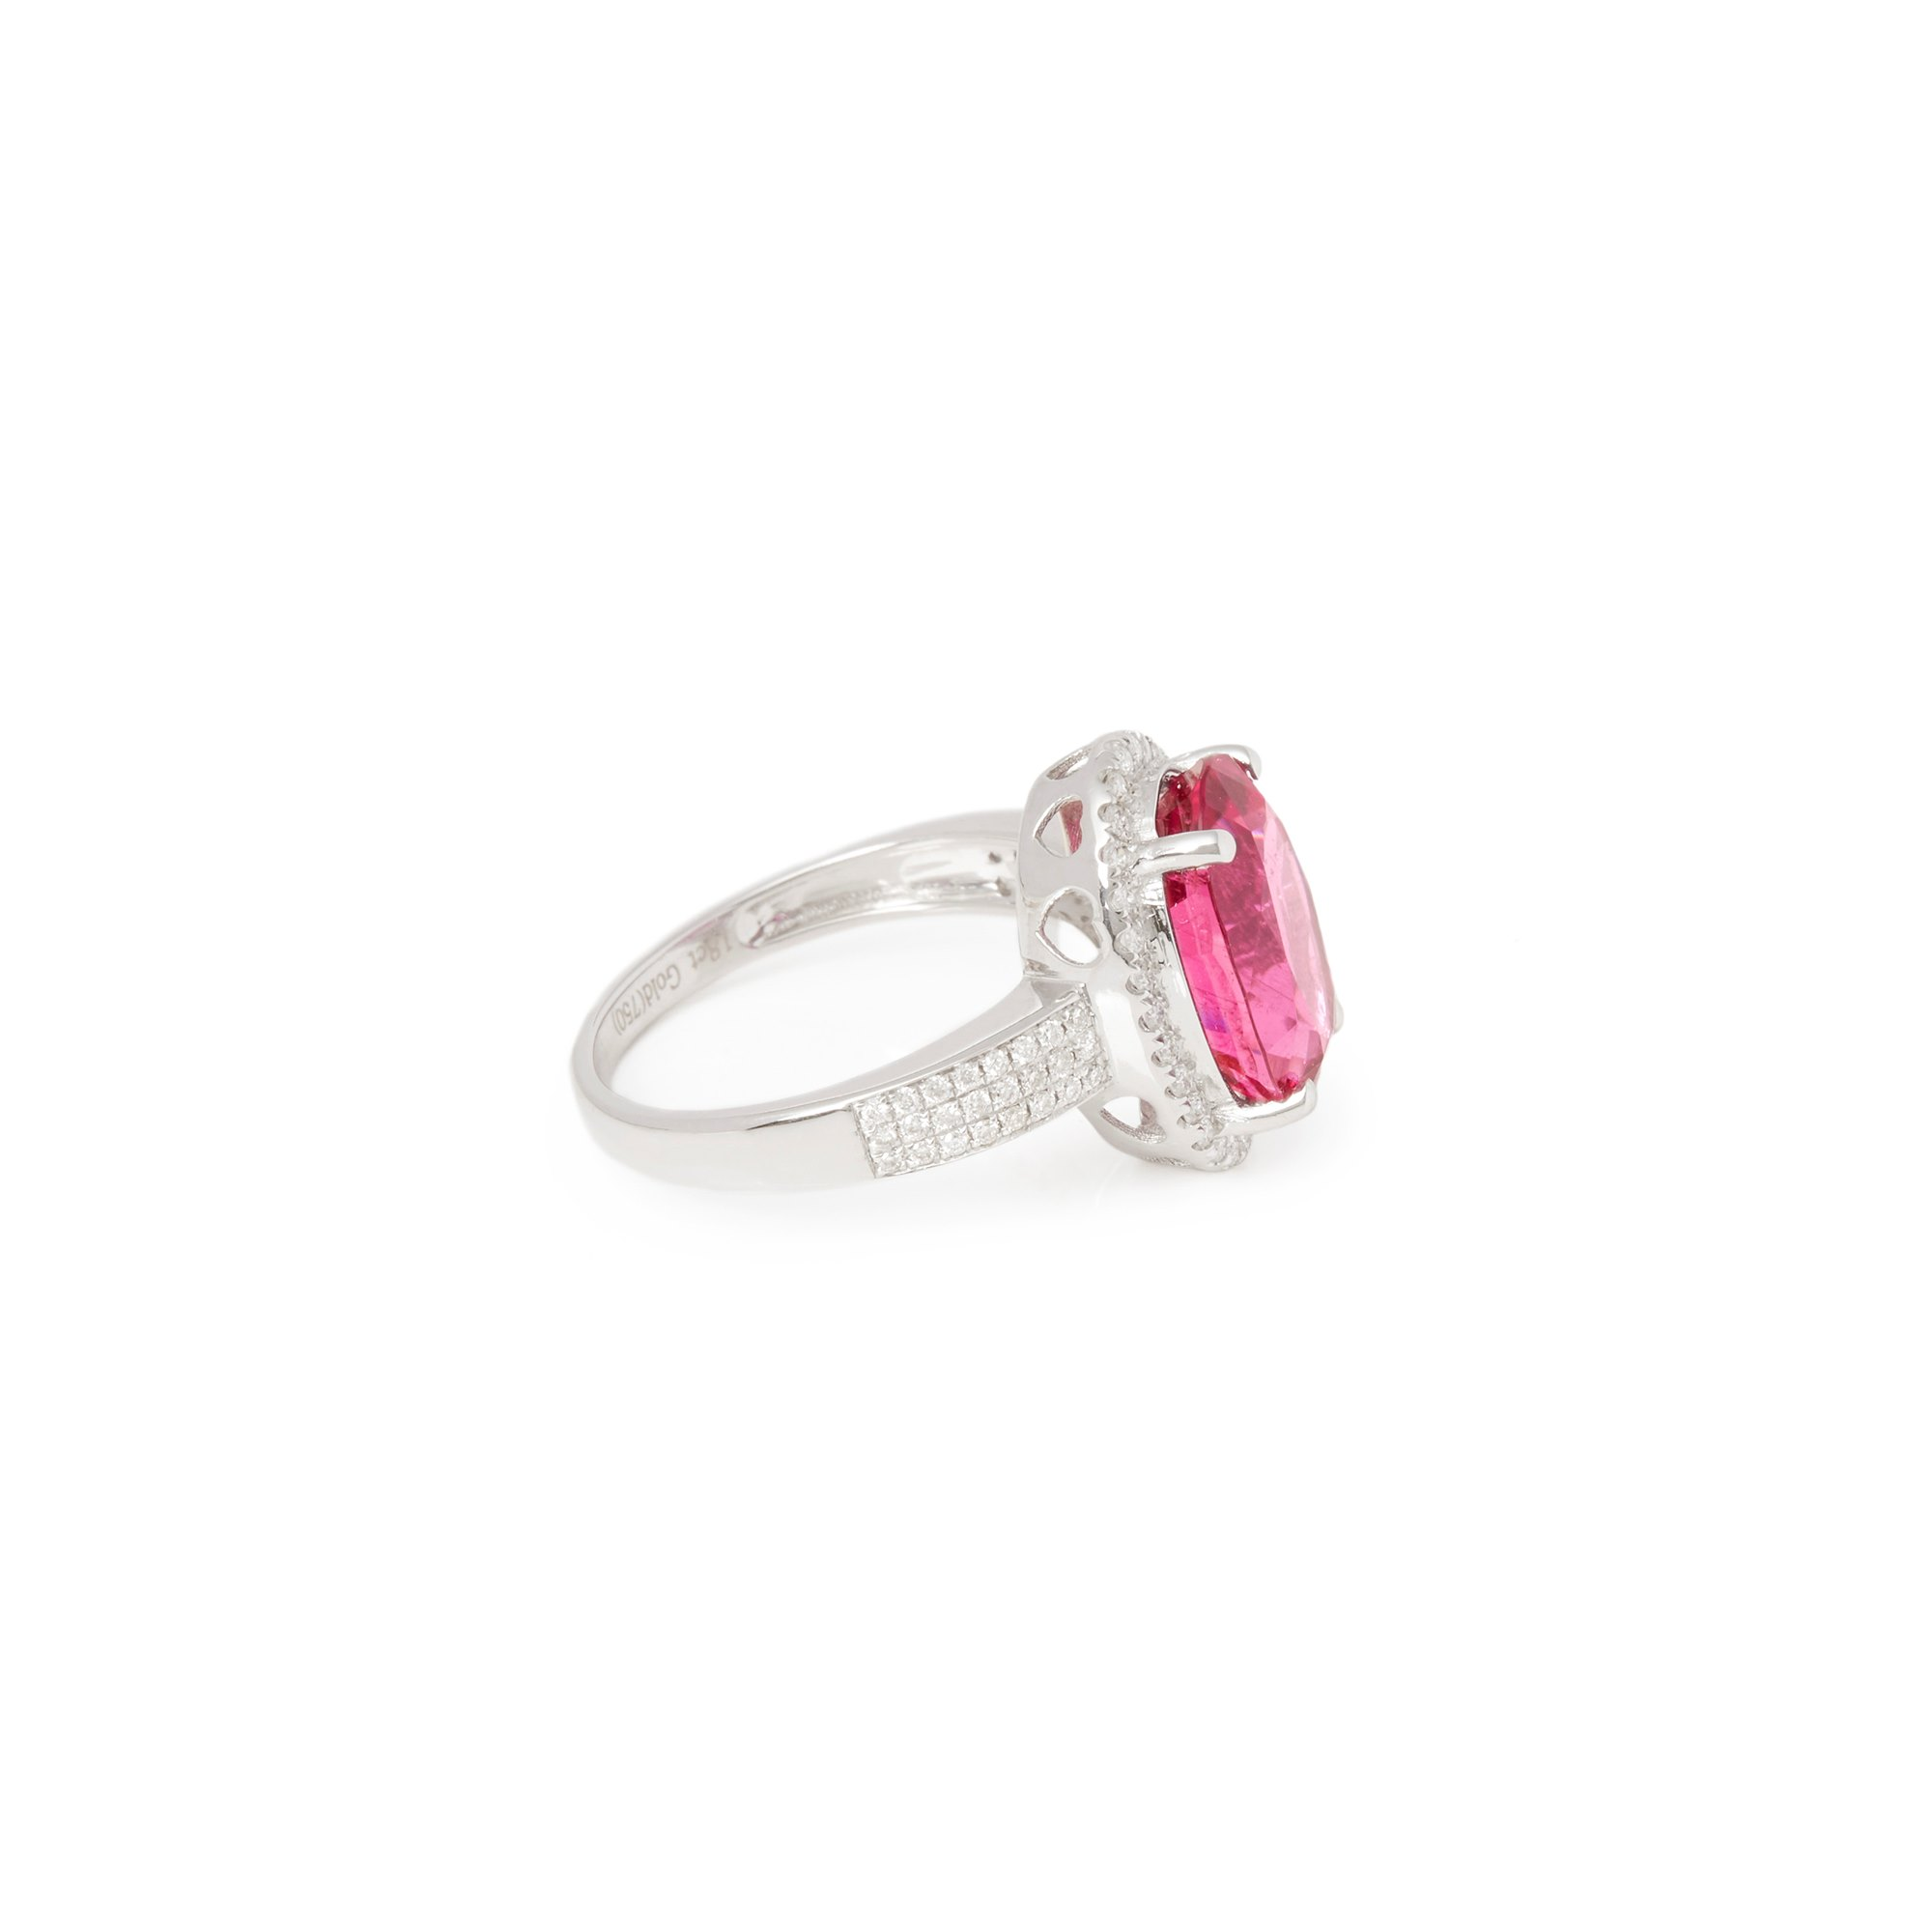 David Jerome Certified 5.81ct Untreated Brazillian Oval Cut Rubellite Tourmaline and Diamond Ring